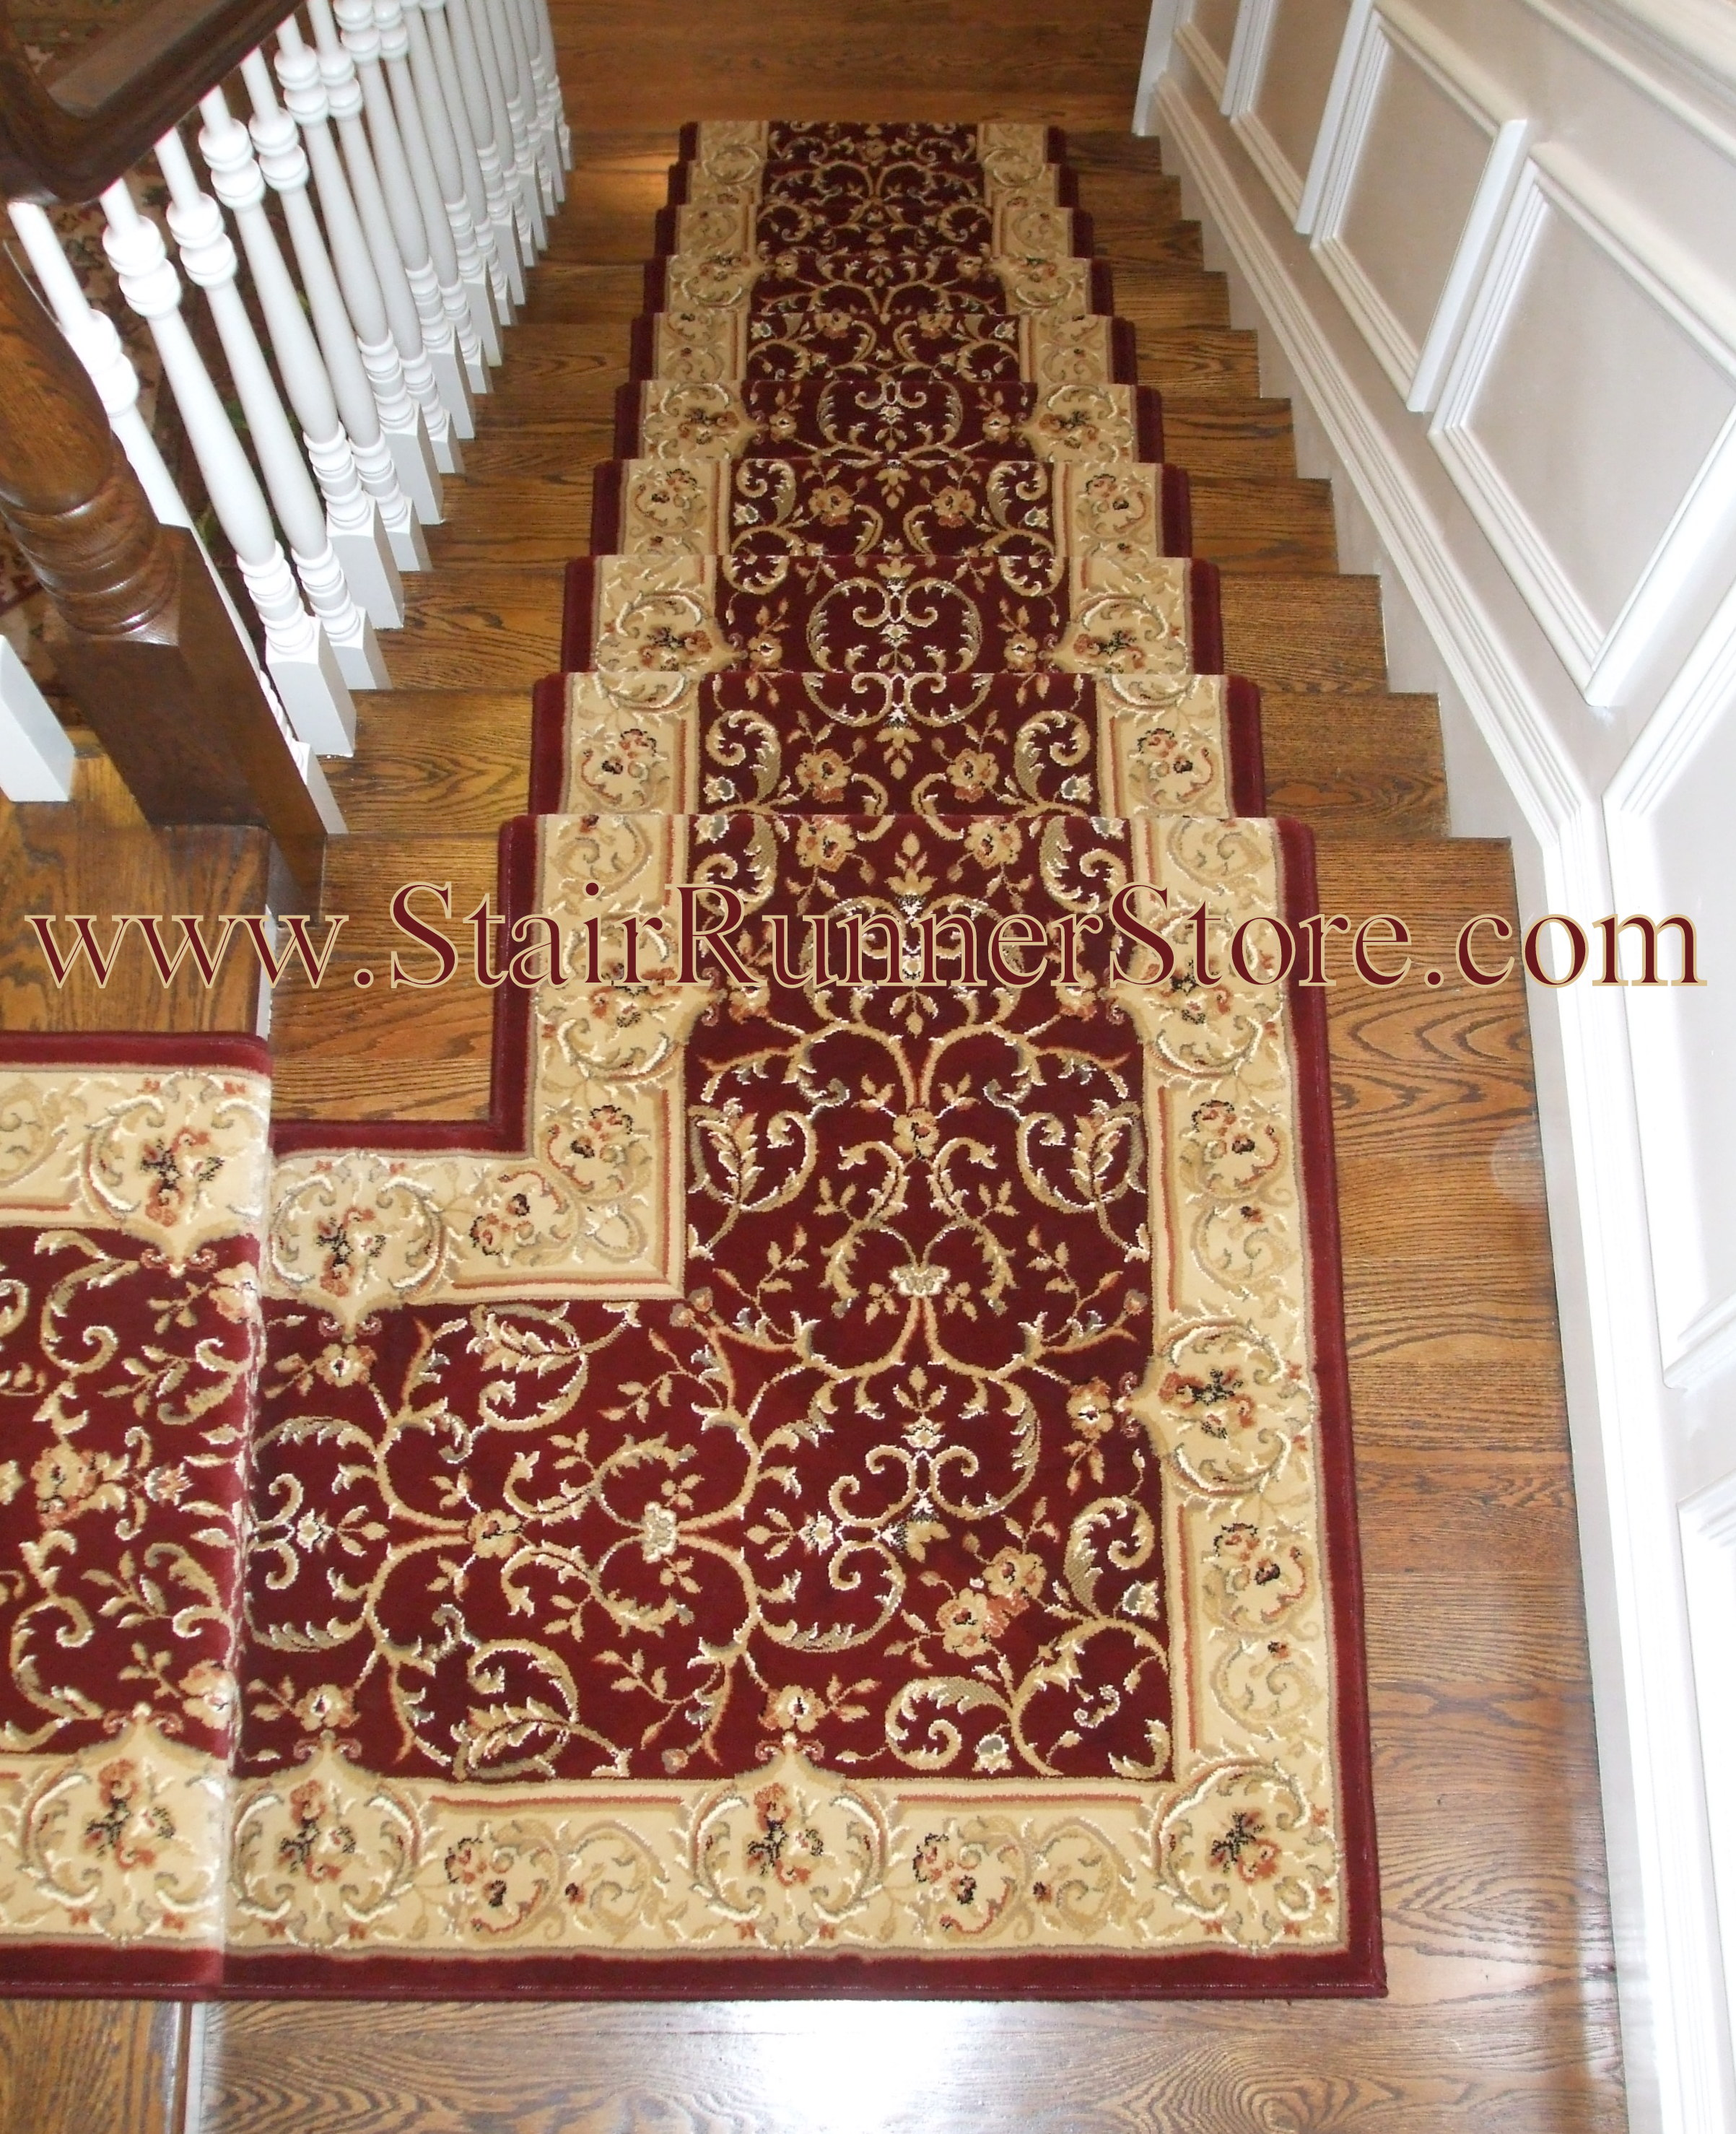 Rug One Oxford Custom Landing Stair Runner Installation